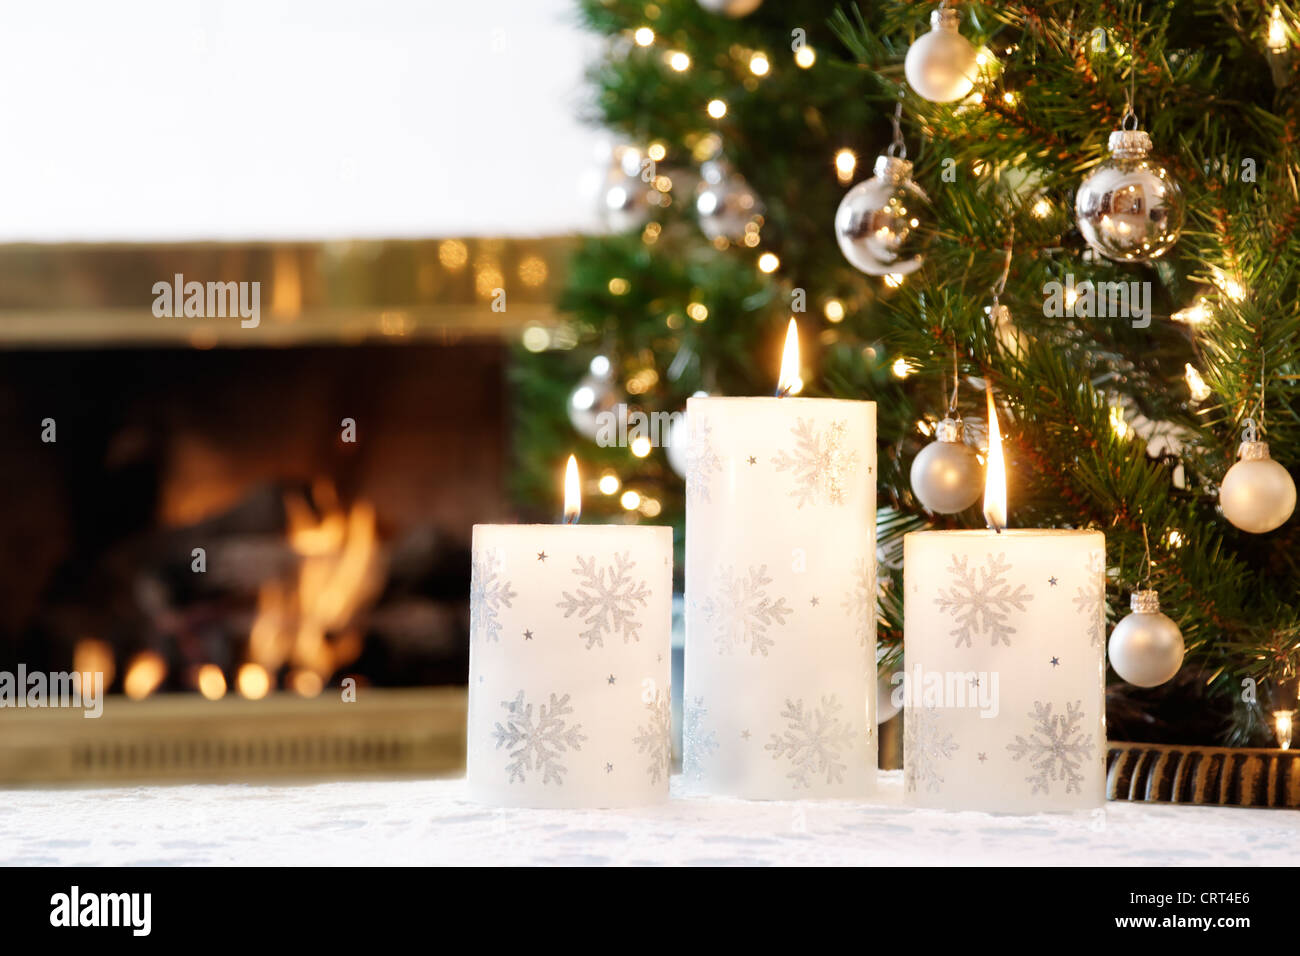 Snowflake candles and glittering decorations by a warm fire - Stock Image